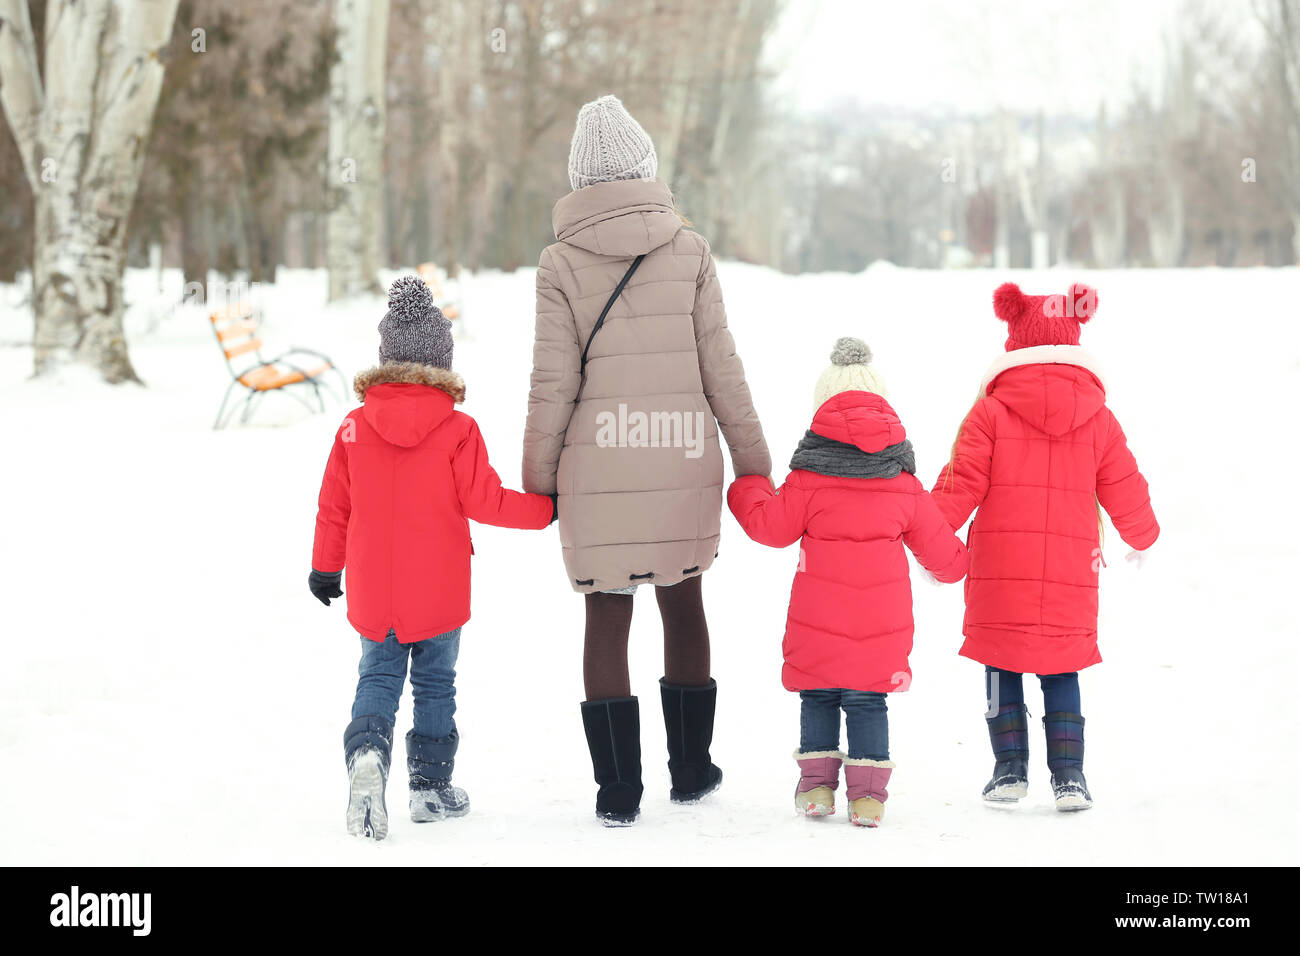 Young woman with children walking on snow - Stock Image